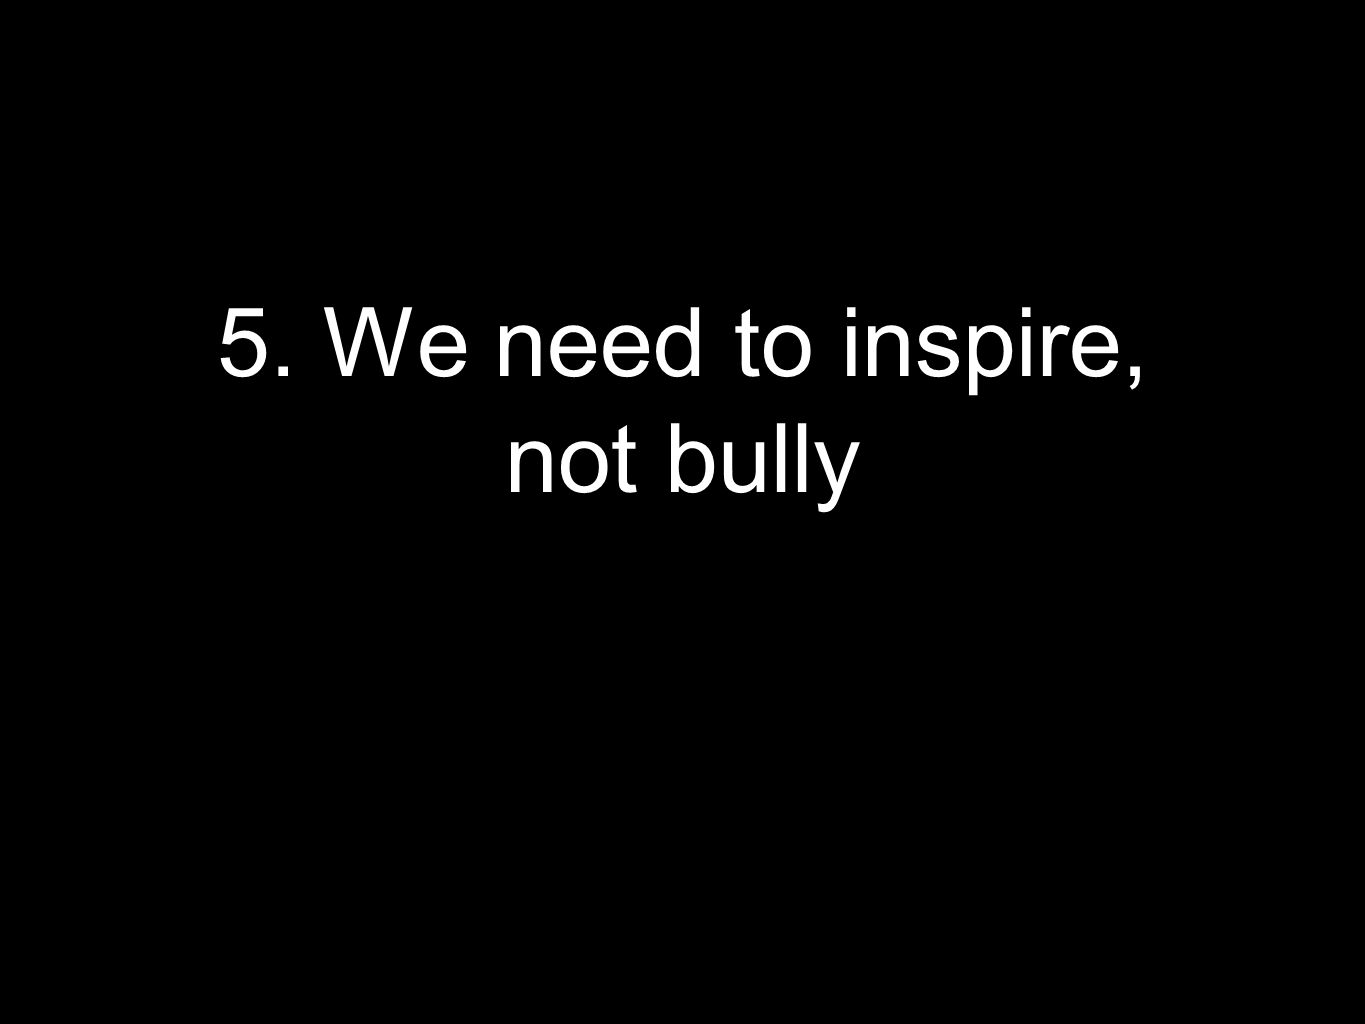 5. We need to inspire, not bully